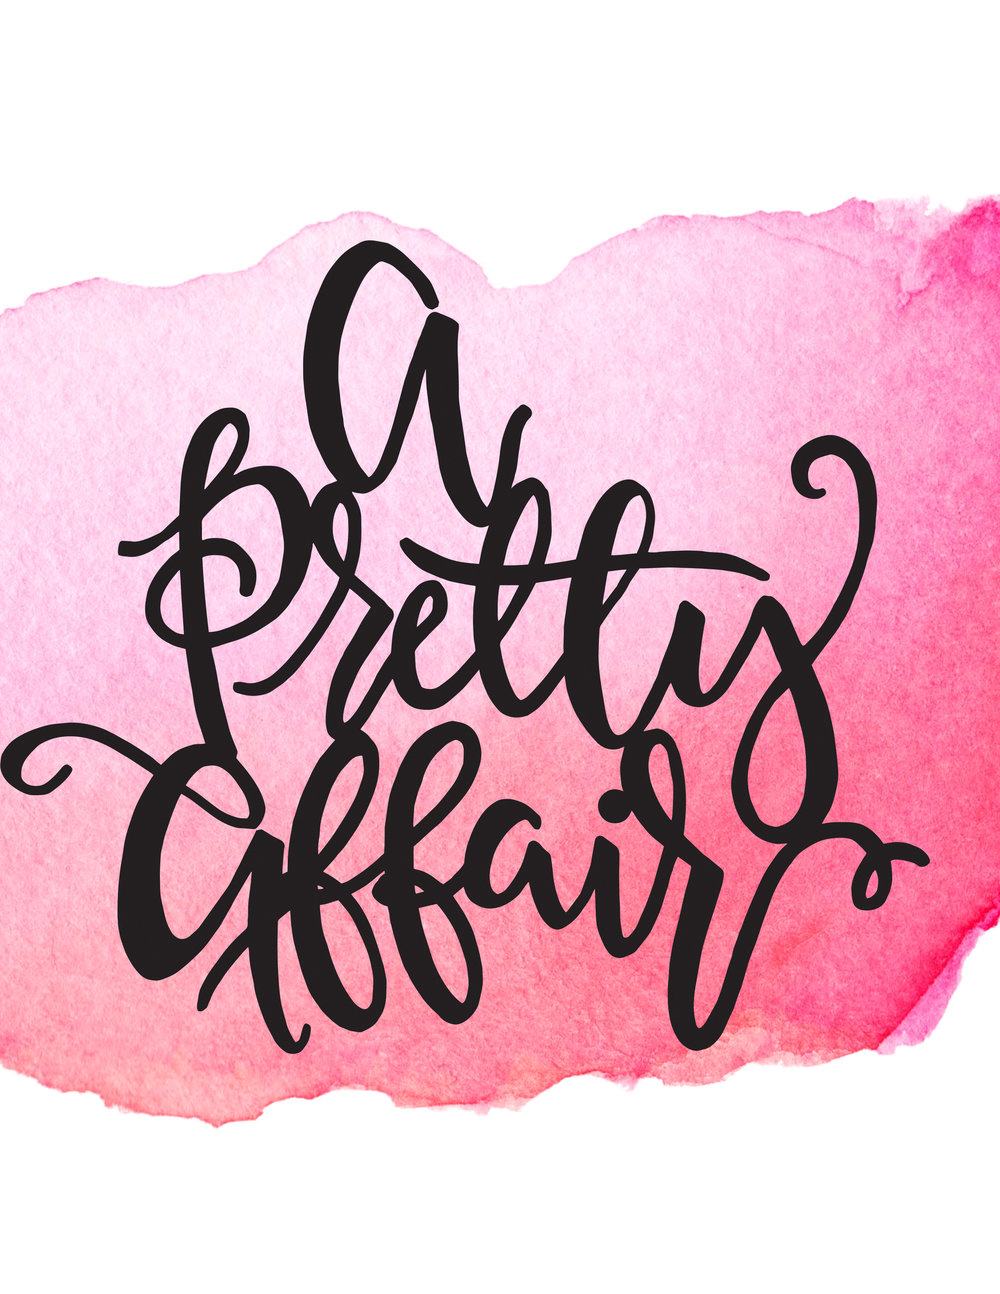 APrettyAffair_PinkWatercolor.jpg